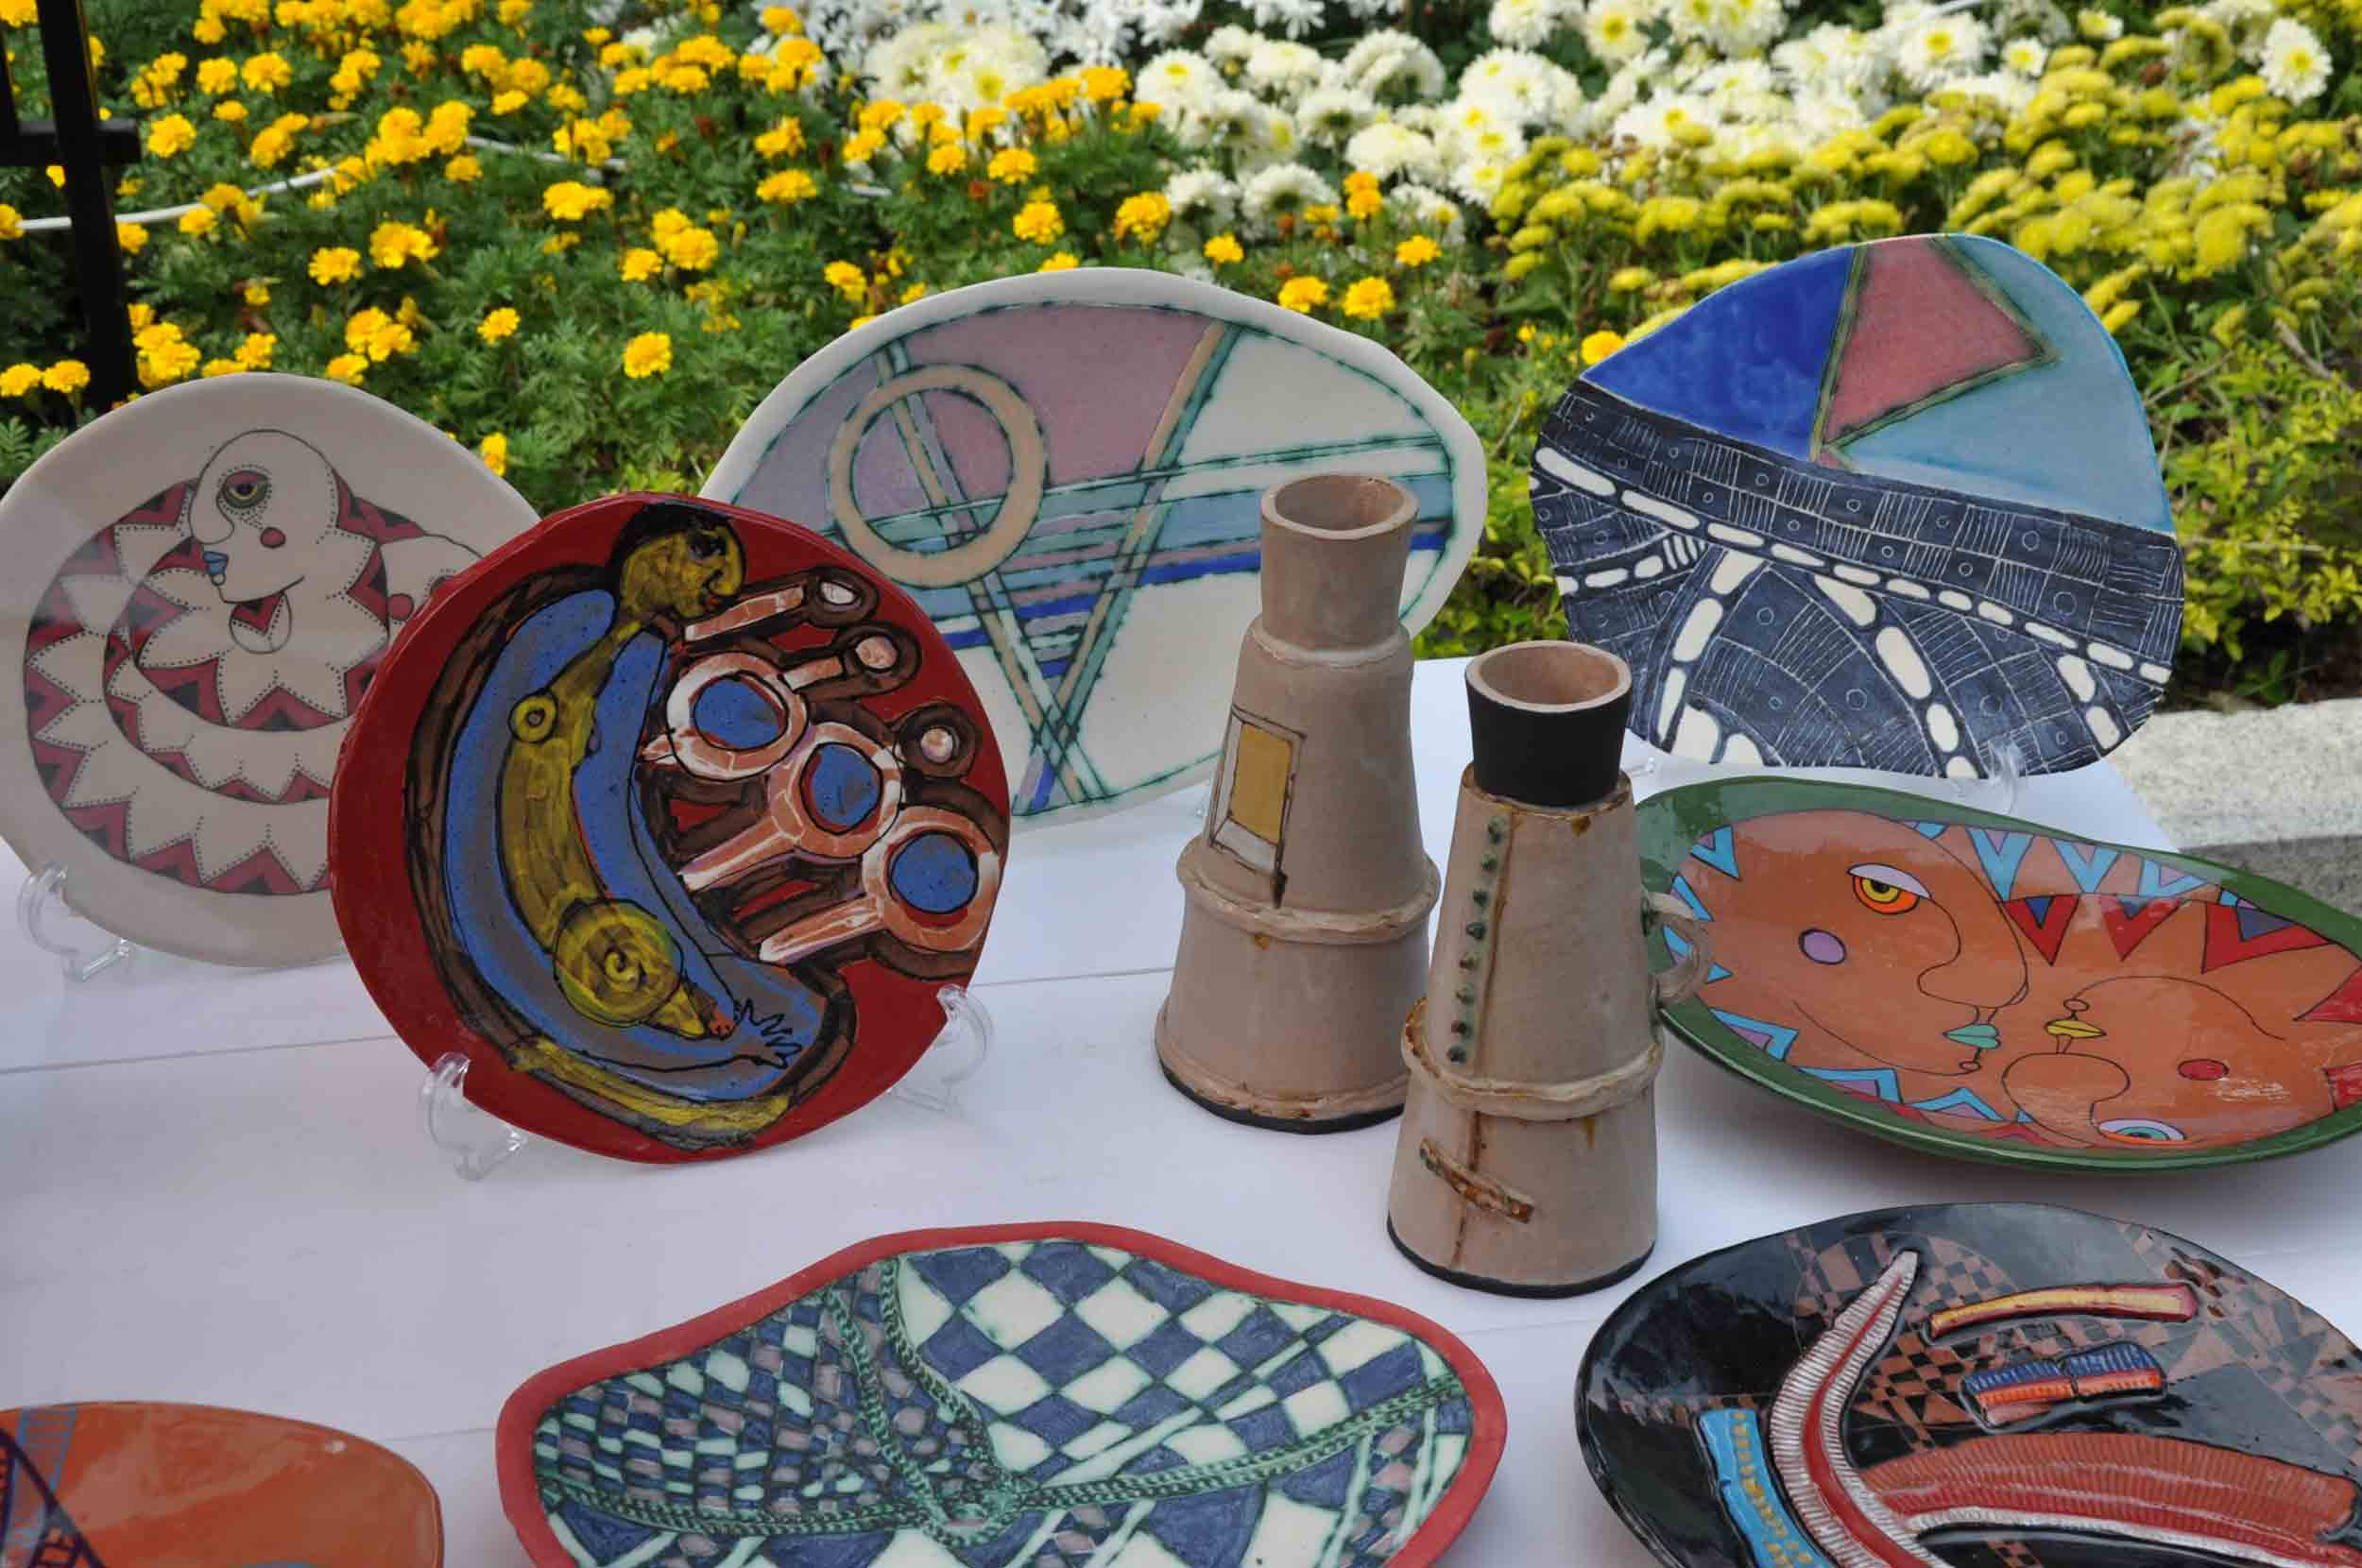 Lusofonia Festival plates and cups on sale